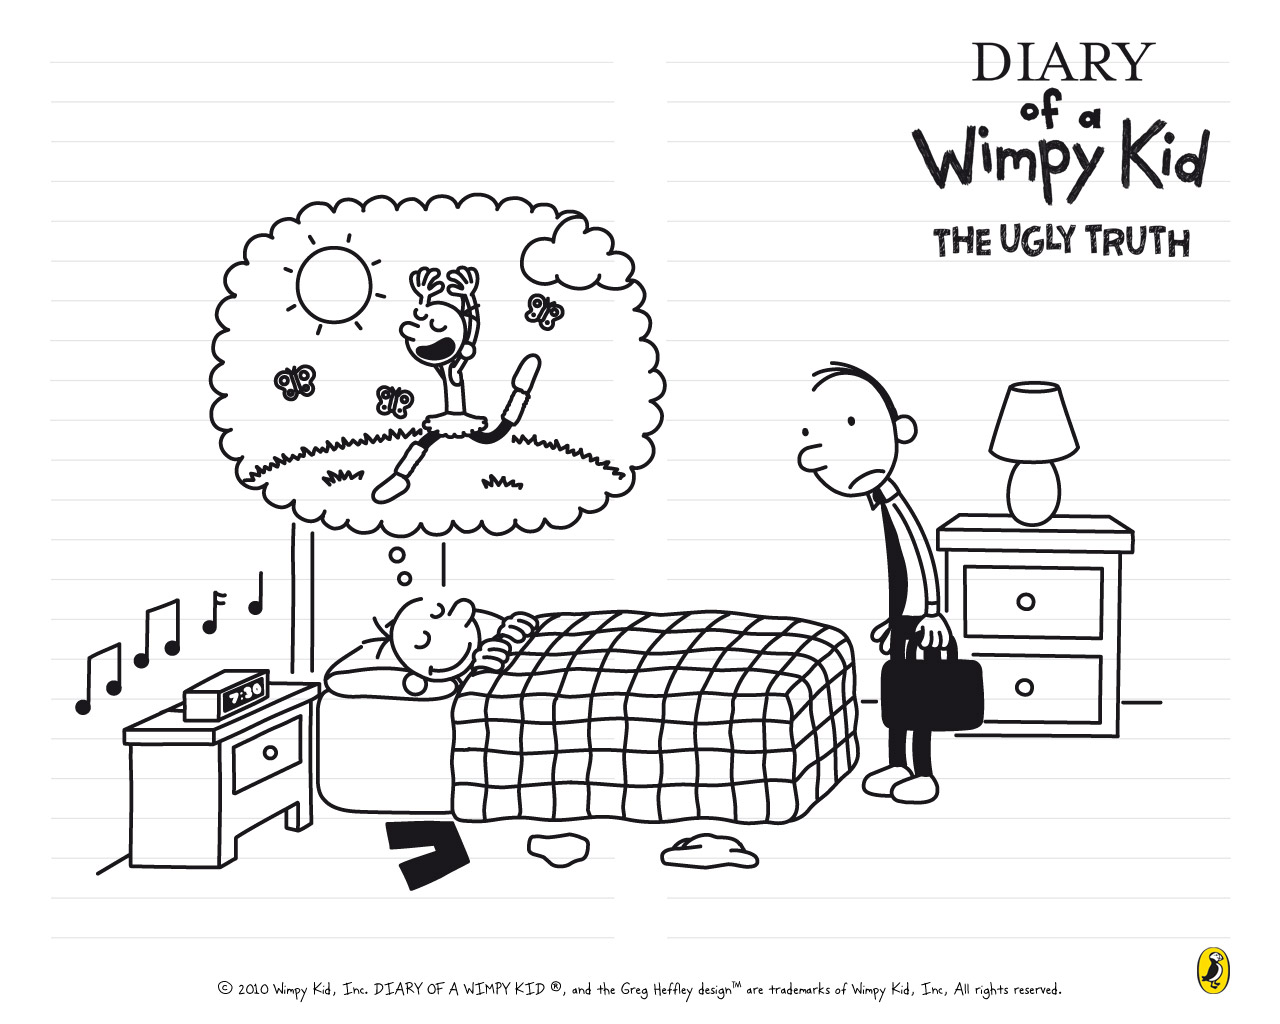 diary of a wimpy kid coloring pages Diary Of A Wimpy Kid The Ugly Truth Coloring Pages | Coloring Pages diary of a wimpy kid coloring pages